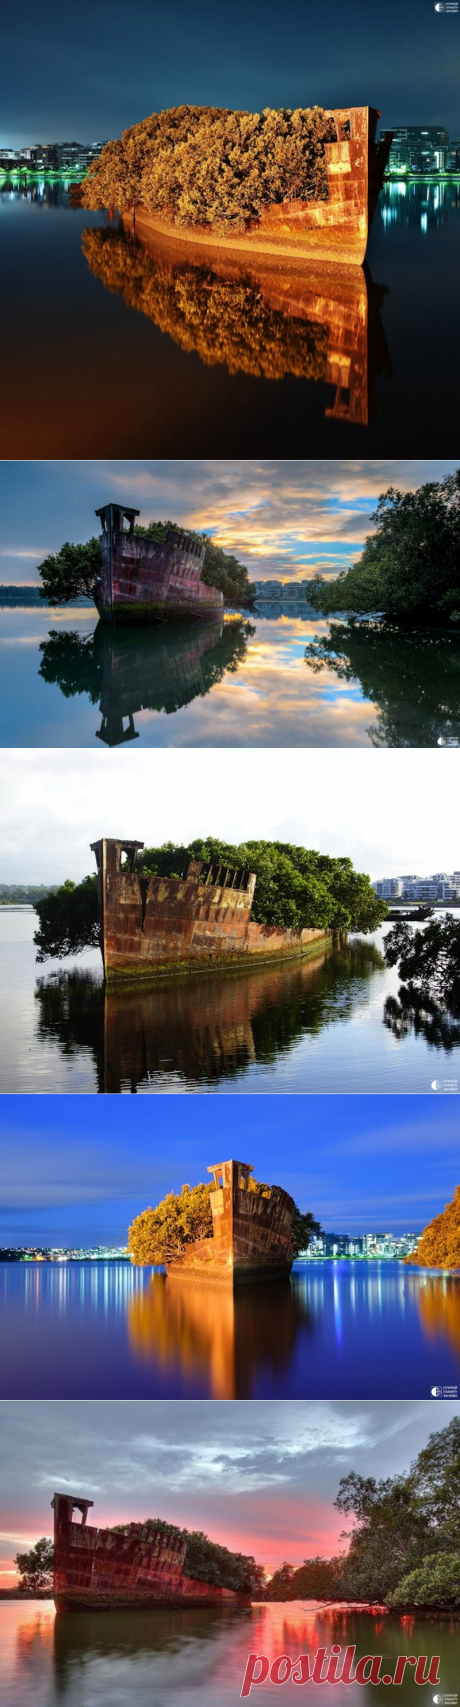 The thrown vessel SS Ayrfield, Floating forest - the floating wood - we Travel together